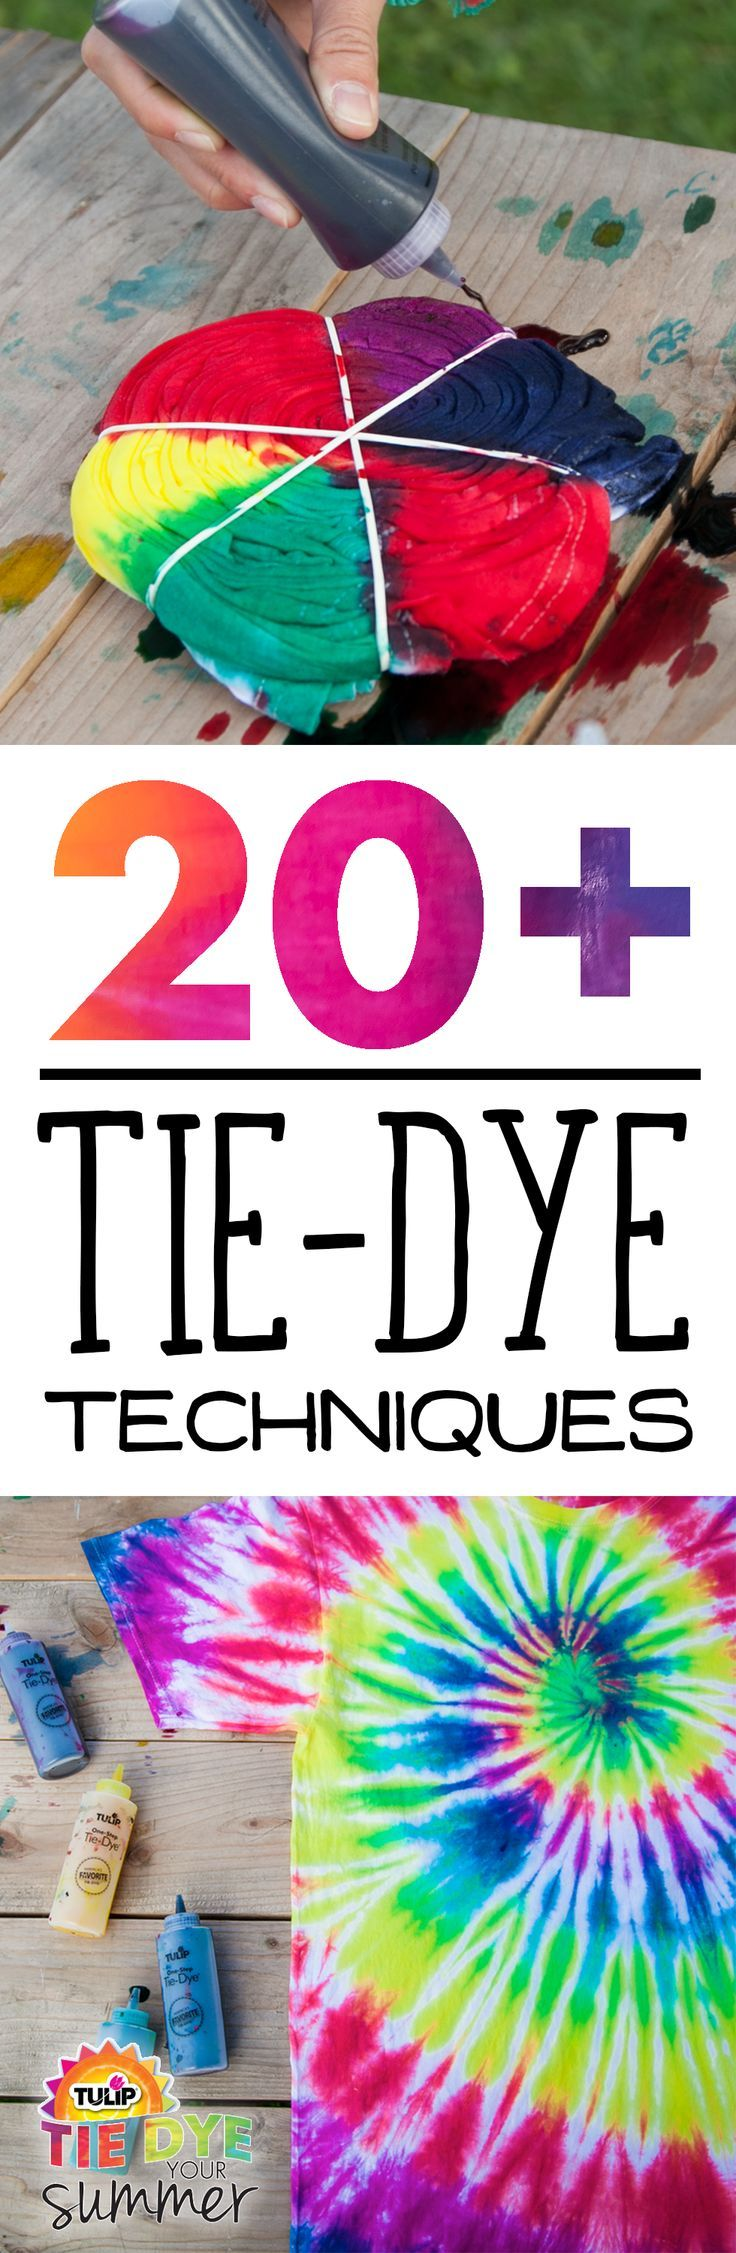 Looks like the perfect afternoon! Love DIY and tie-dye? Check out tiedyeyoursummer.com for all the best te